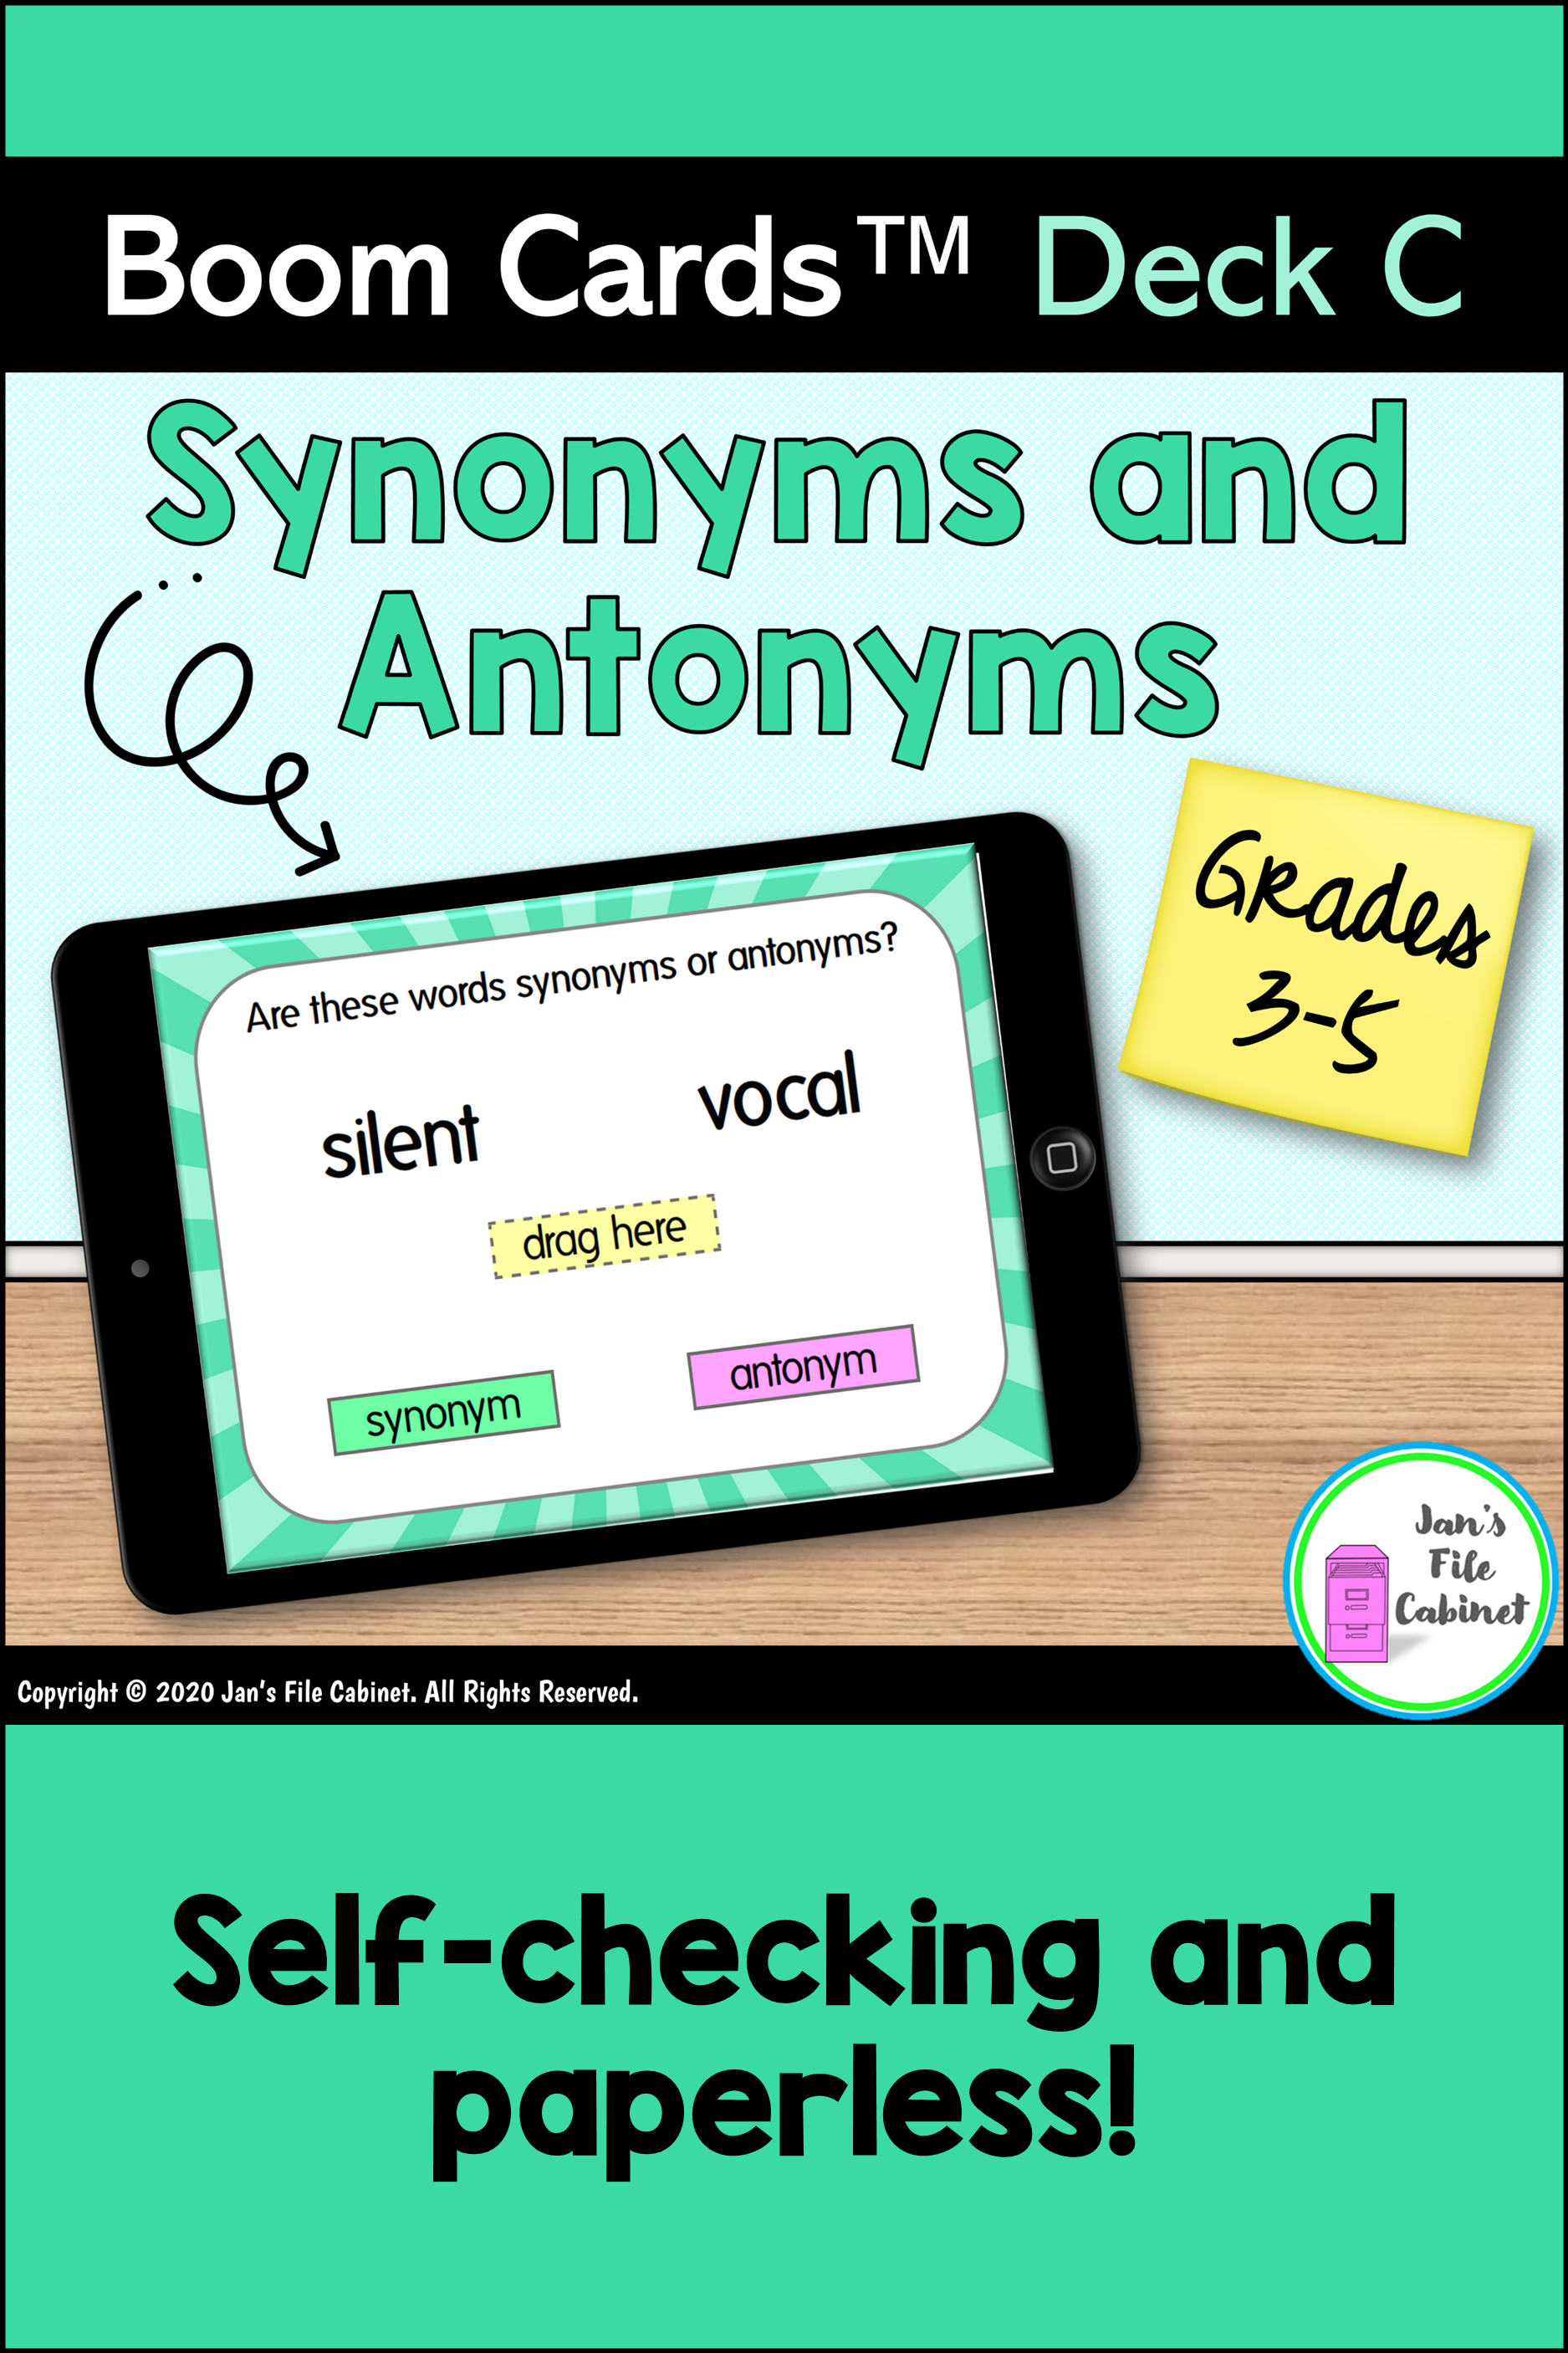 Synonyms And Antonyms Deck C Boom Cards Distance Learning Synonyms And Antonyms Vocabulary Strategies Vocabulary Development